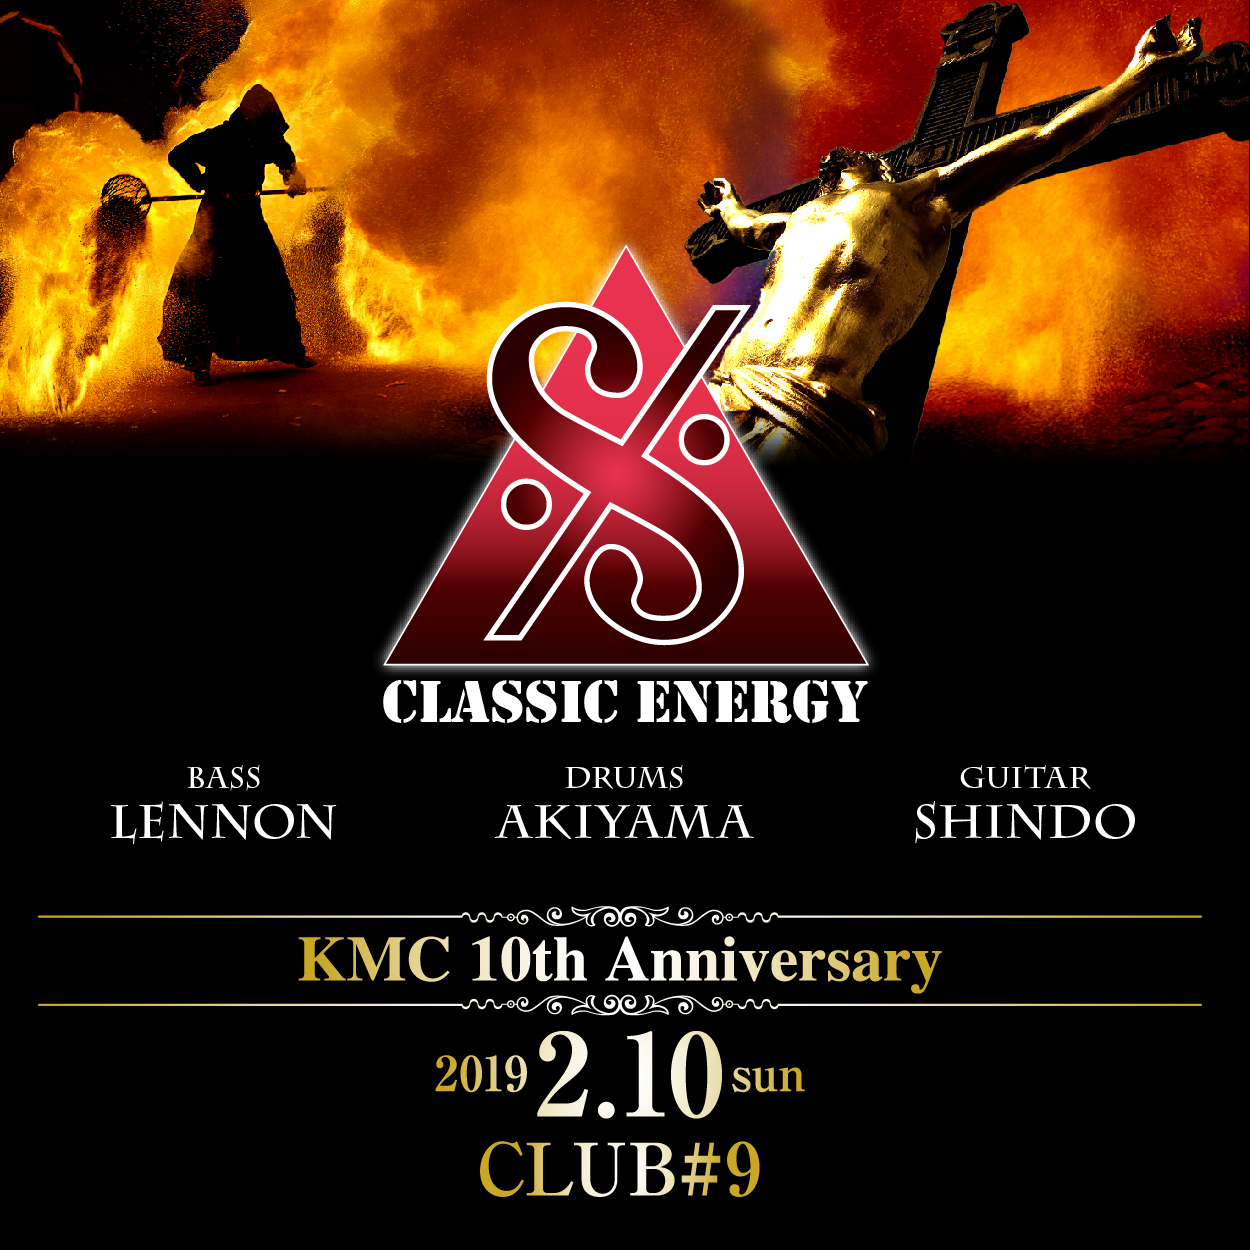 KMC 10th Anniversary